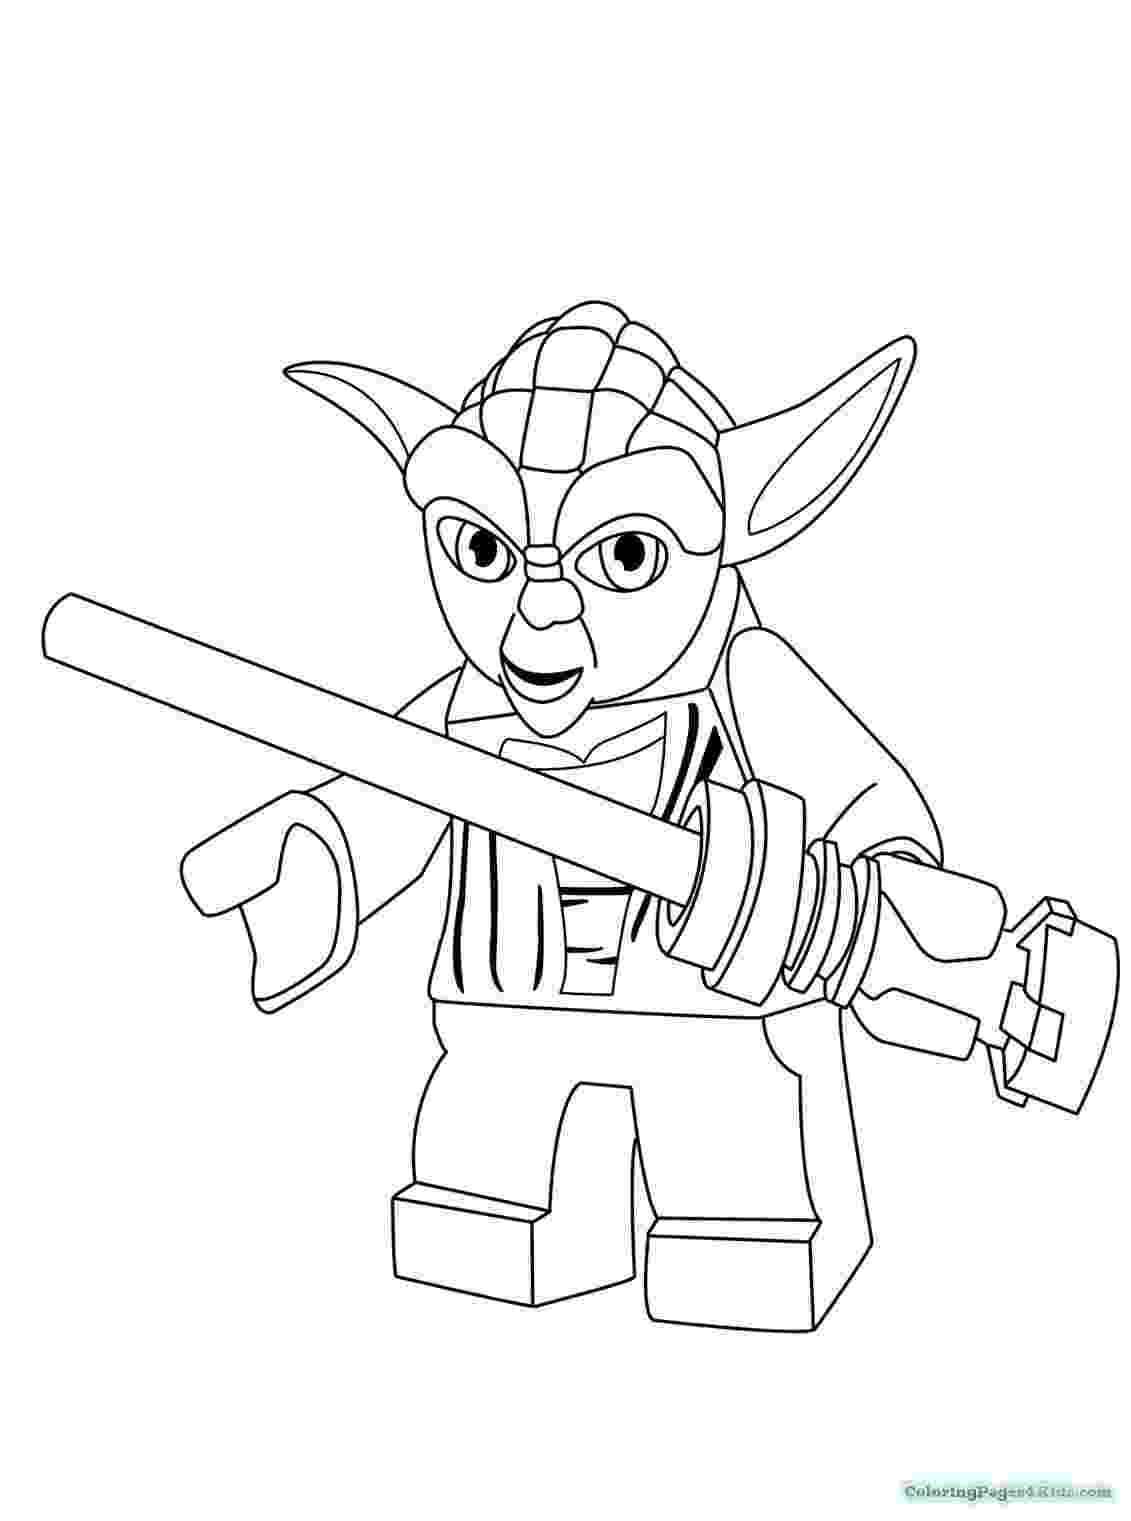 lego star wars color pages lego star wars coloring pages best coloring pages for kids star color lego wars pages